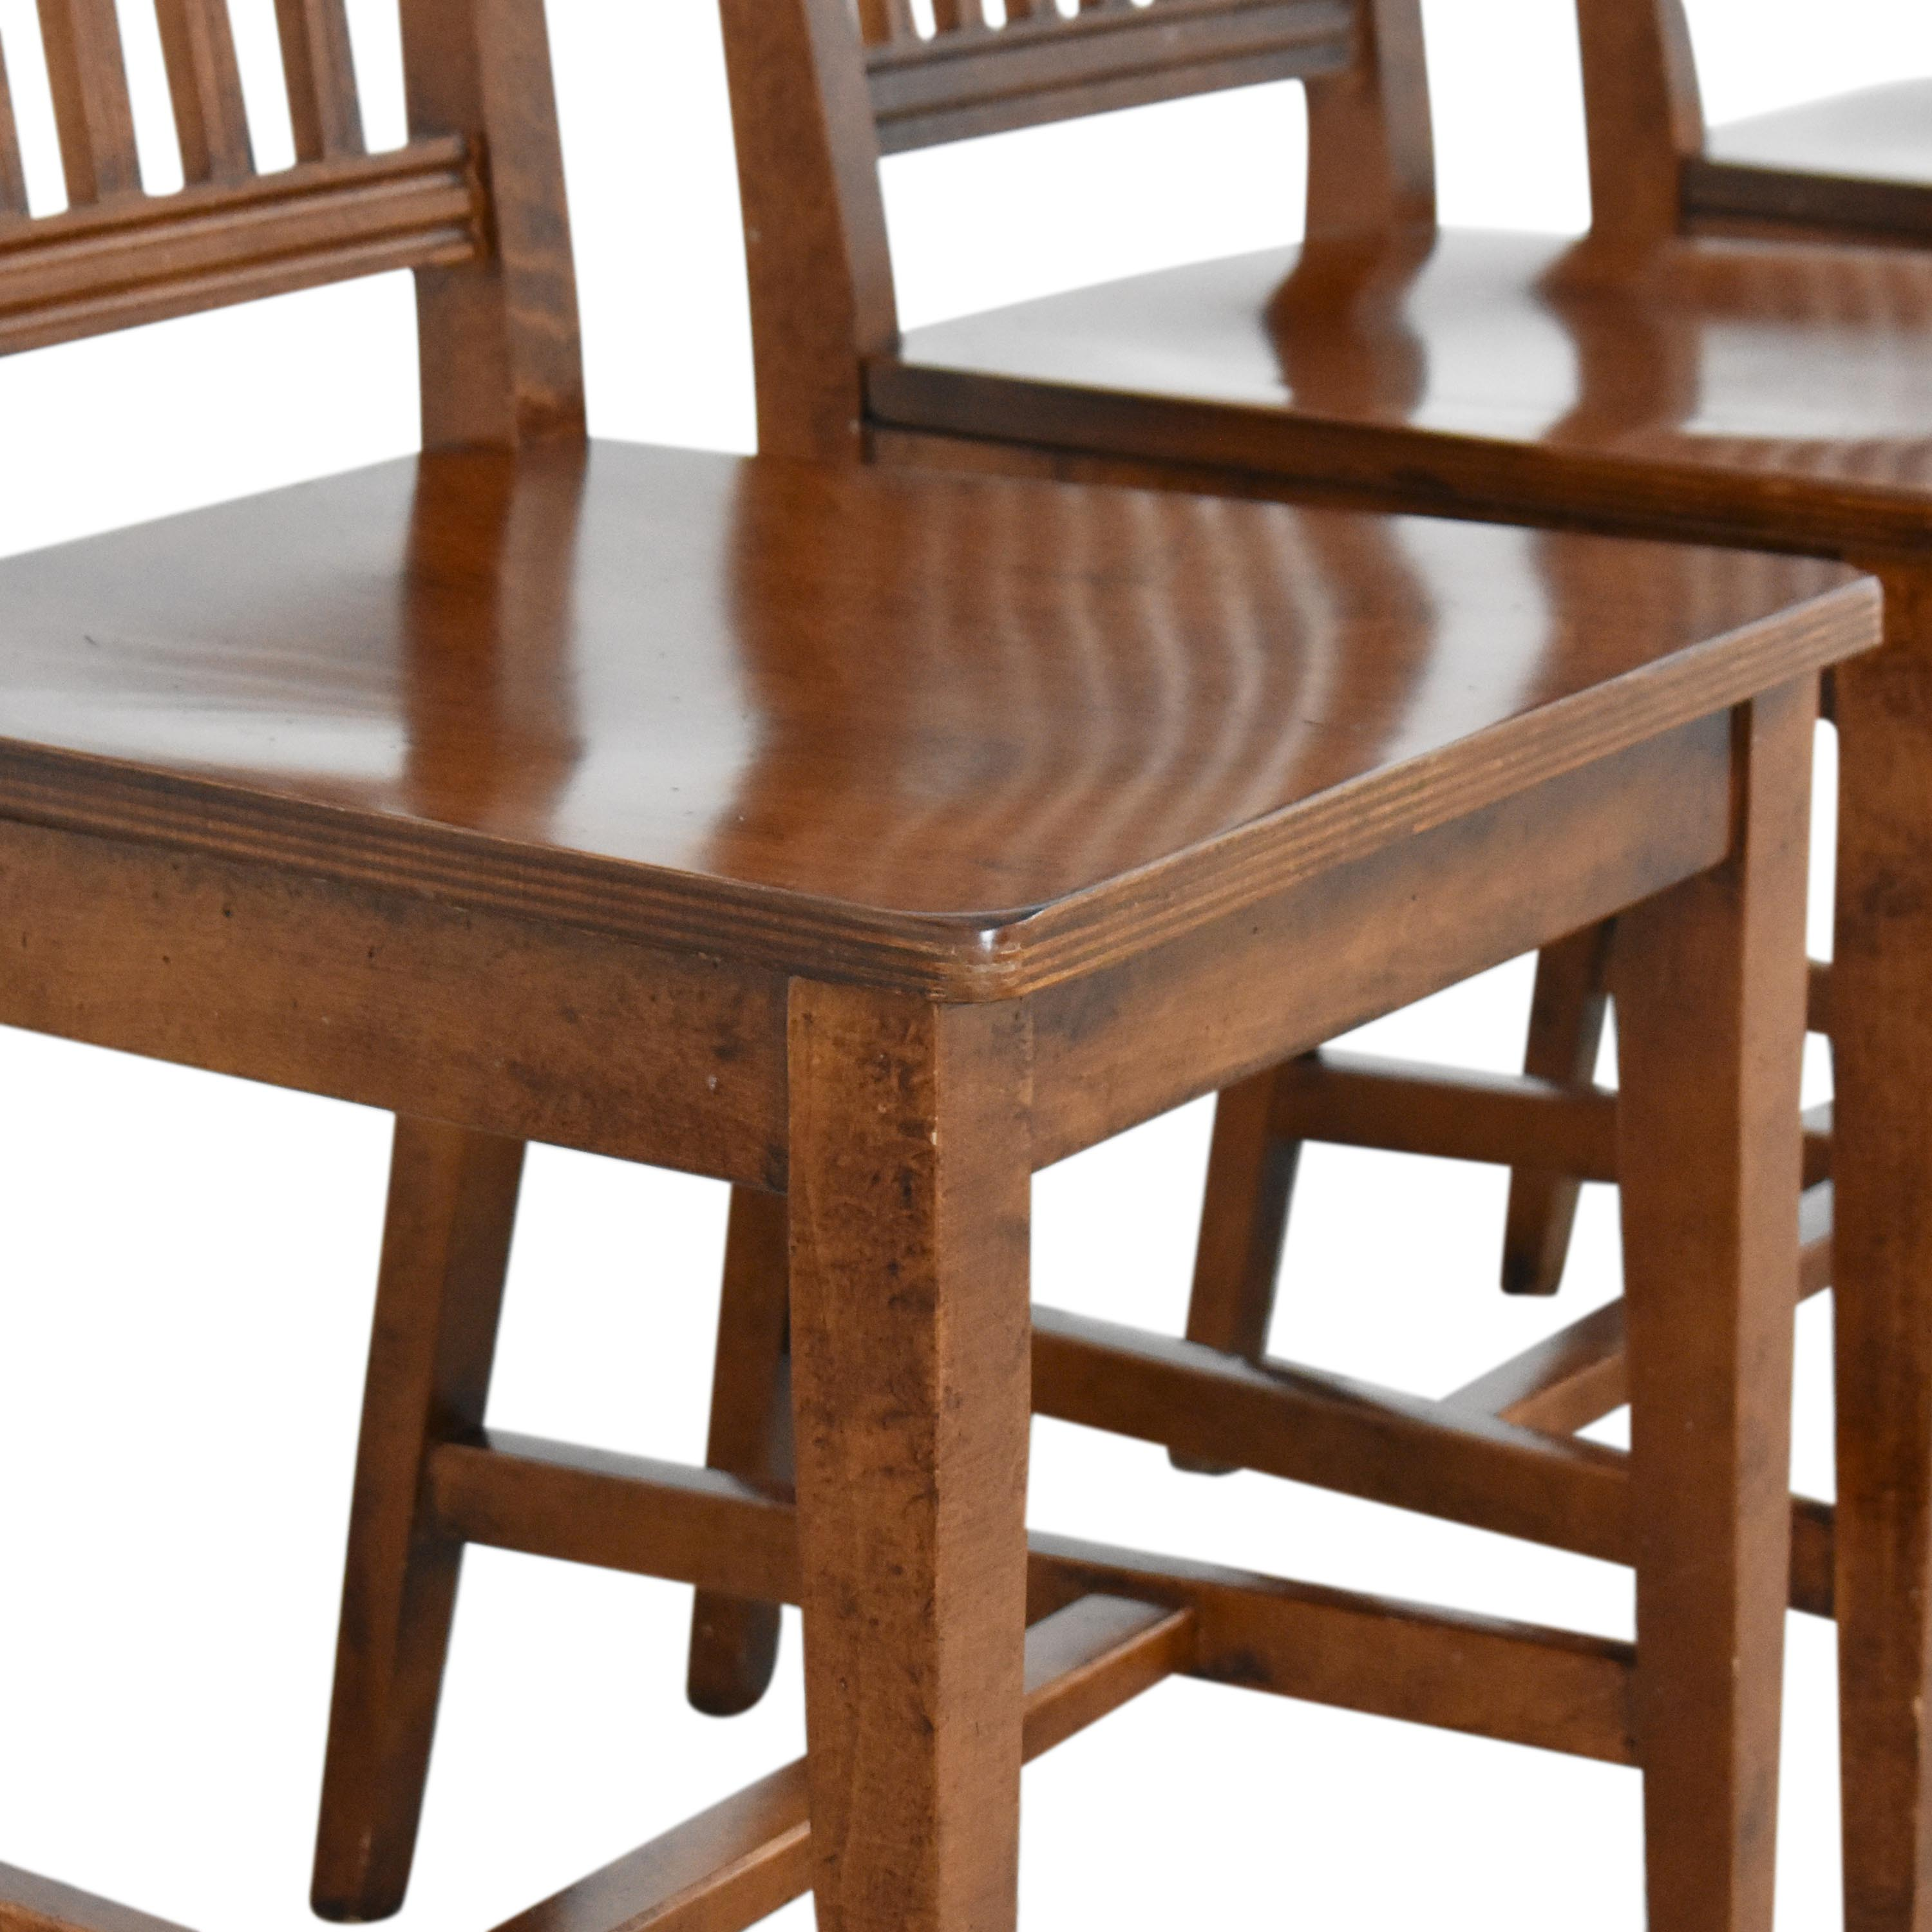 Crate & Barrel Crate & Barrel Village Nero Noche Dining Chairs brown